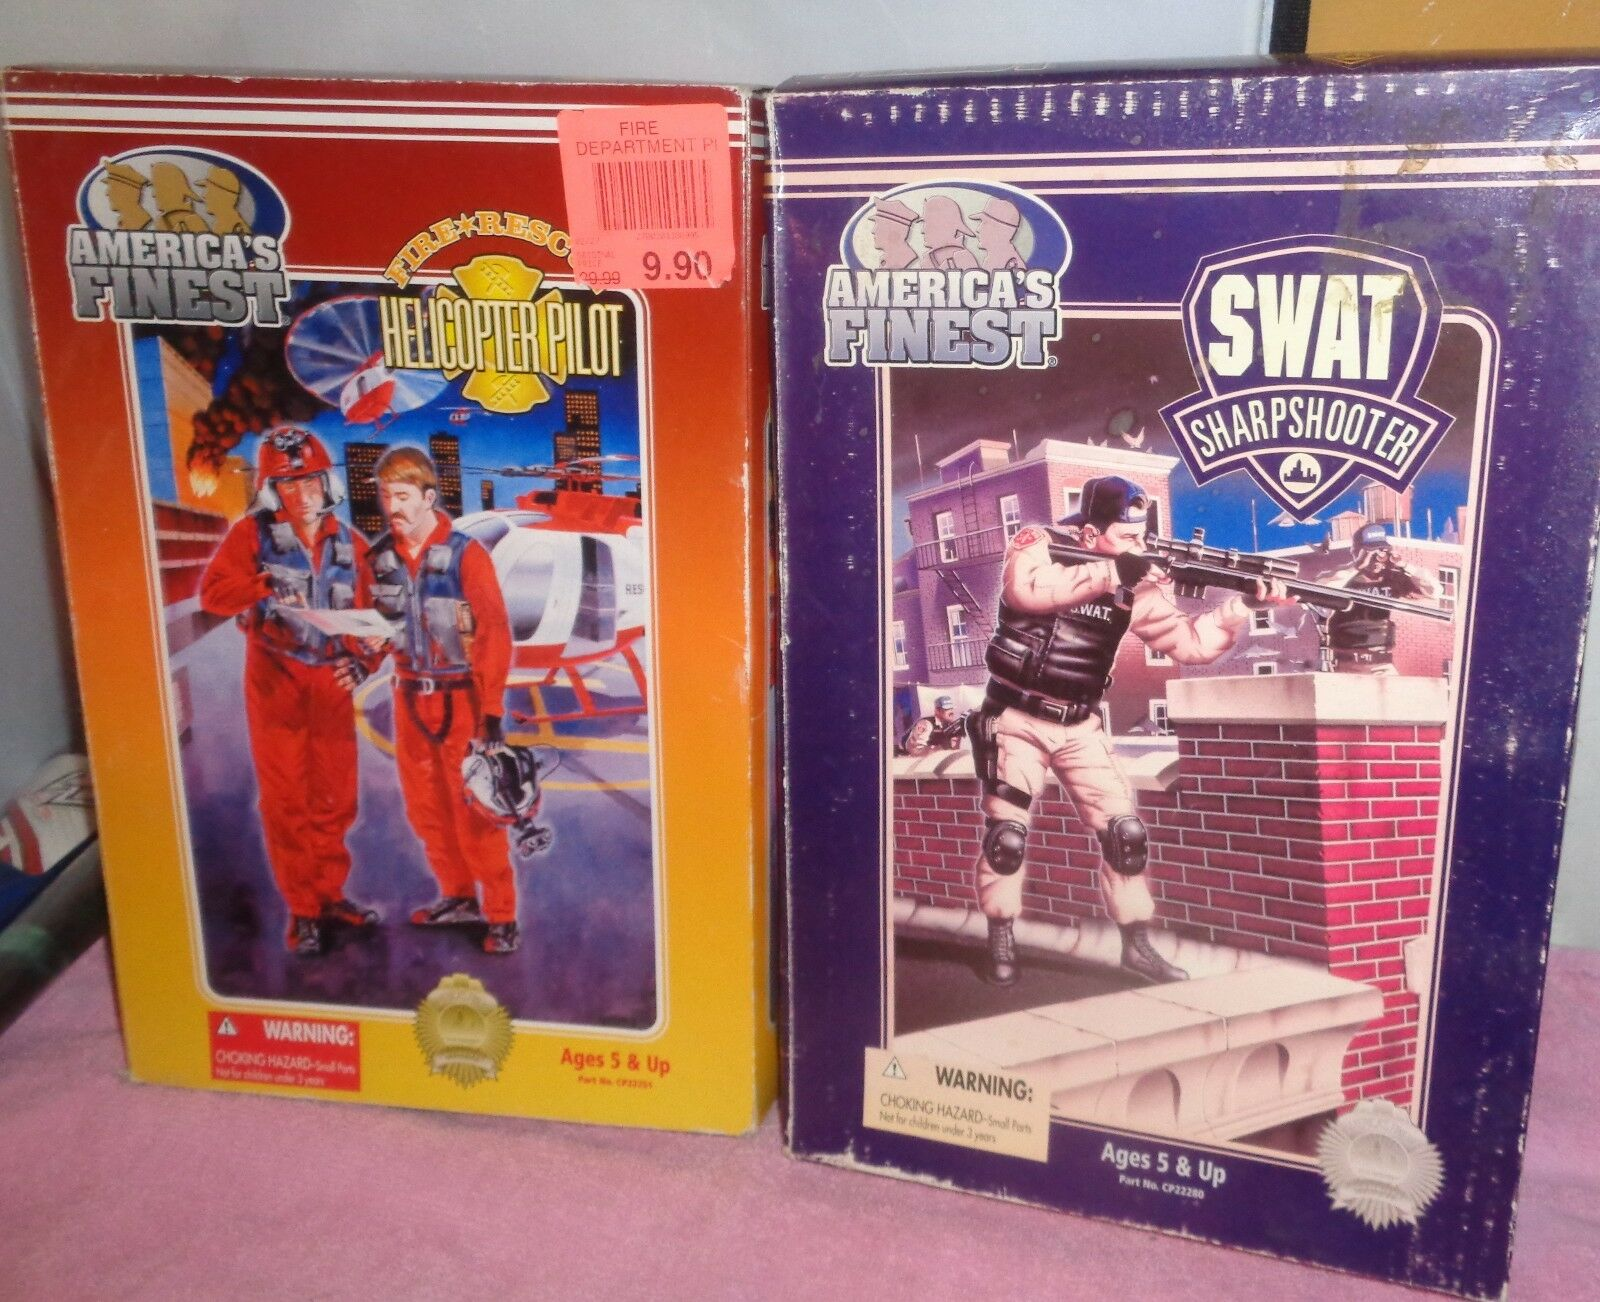 Americas Finest Action Figures  Swat Sharpshooter &  Helicopter Pilot  NRFB